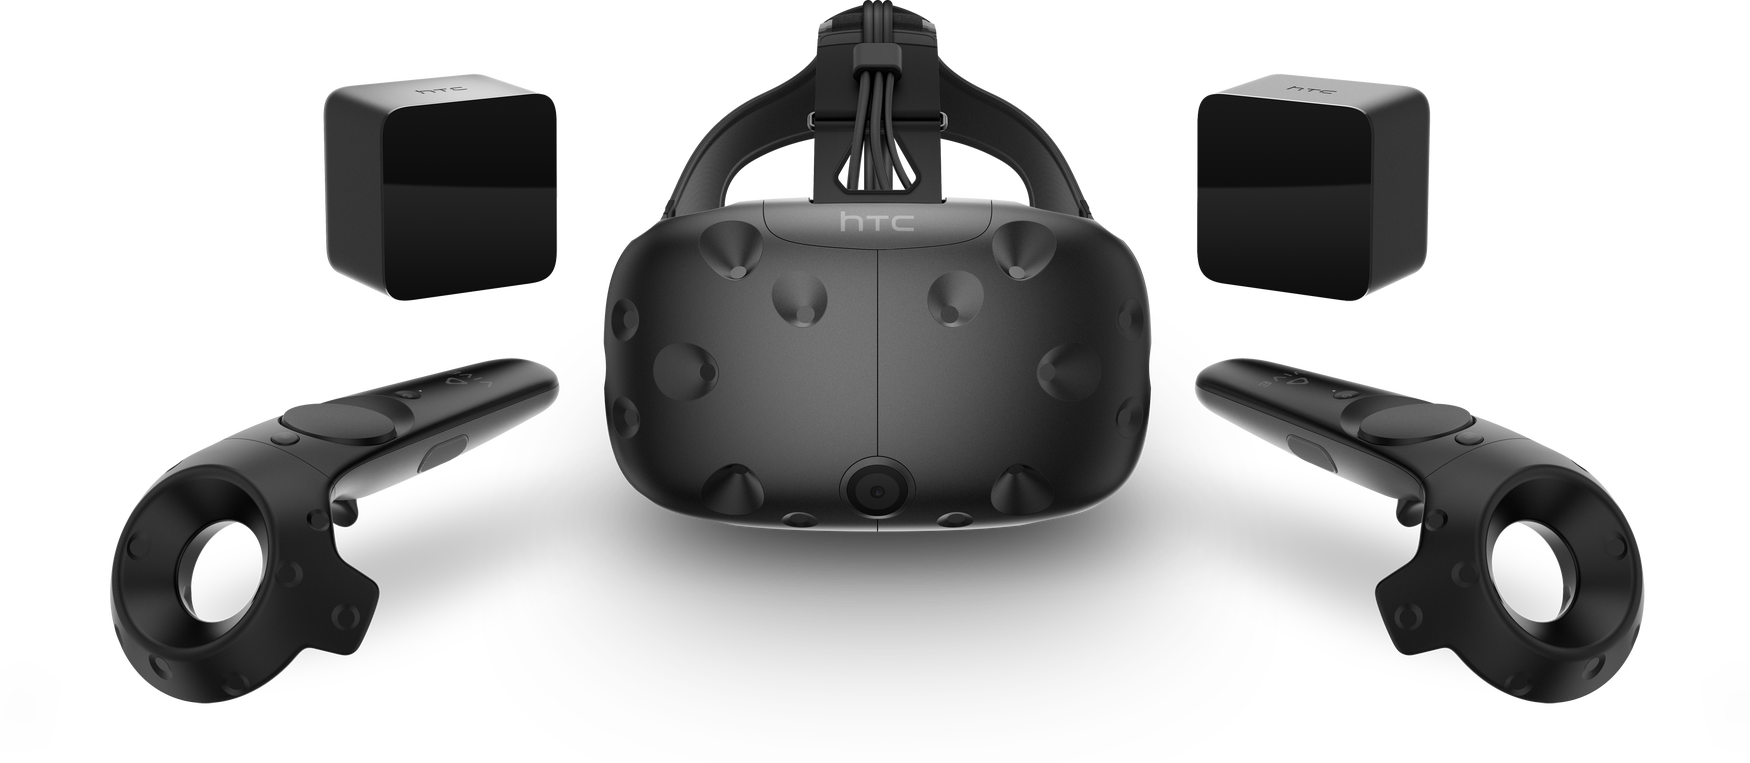 HTC Vive: Five Months Later